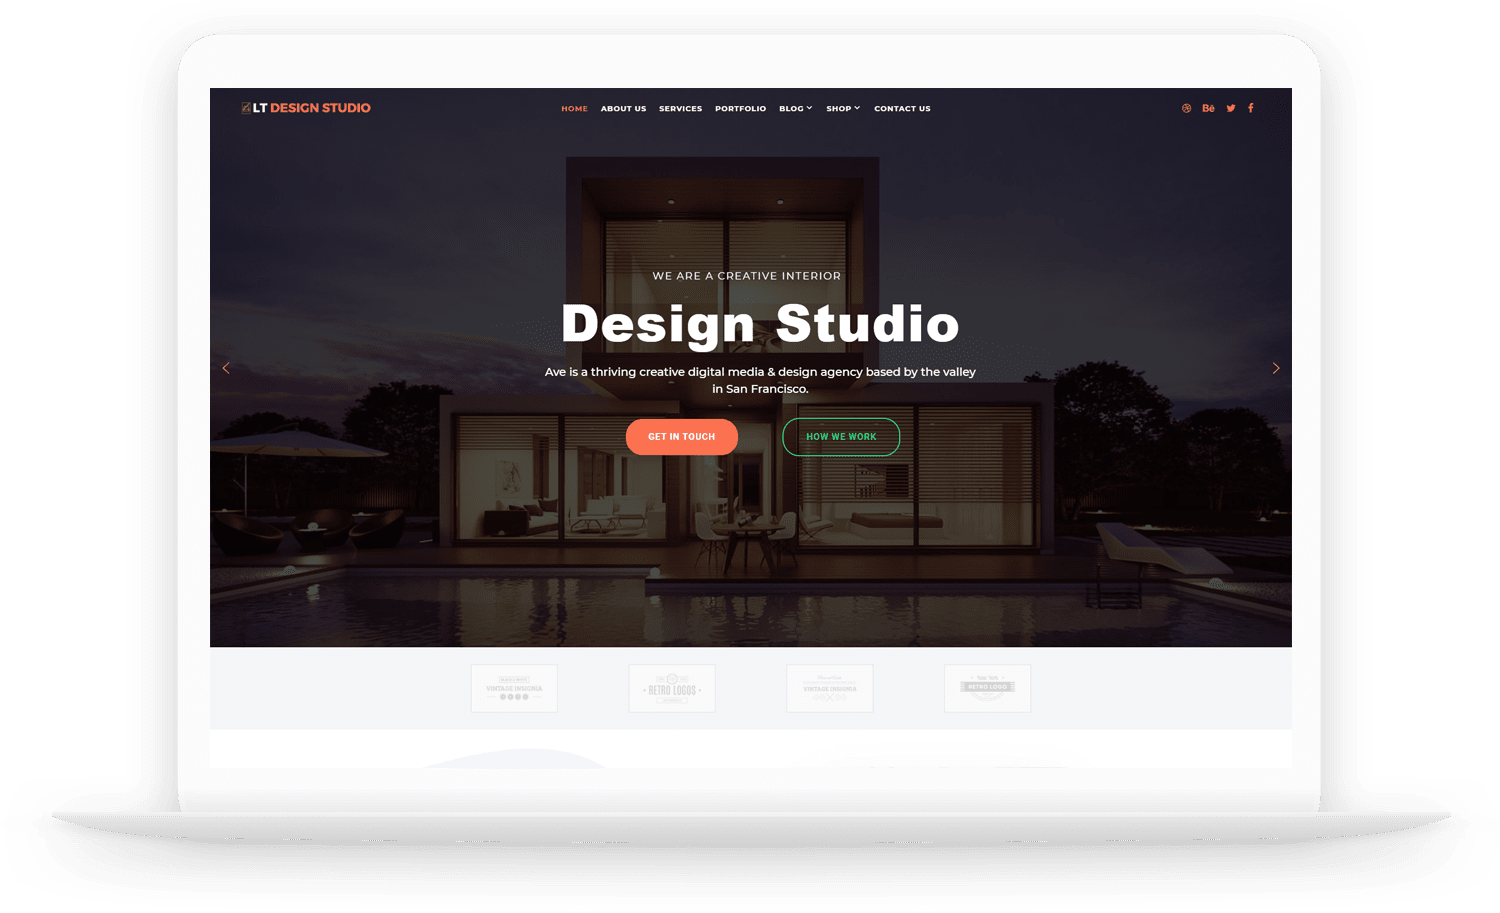 LT-Design-Studio-wordpress-theme